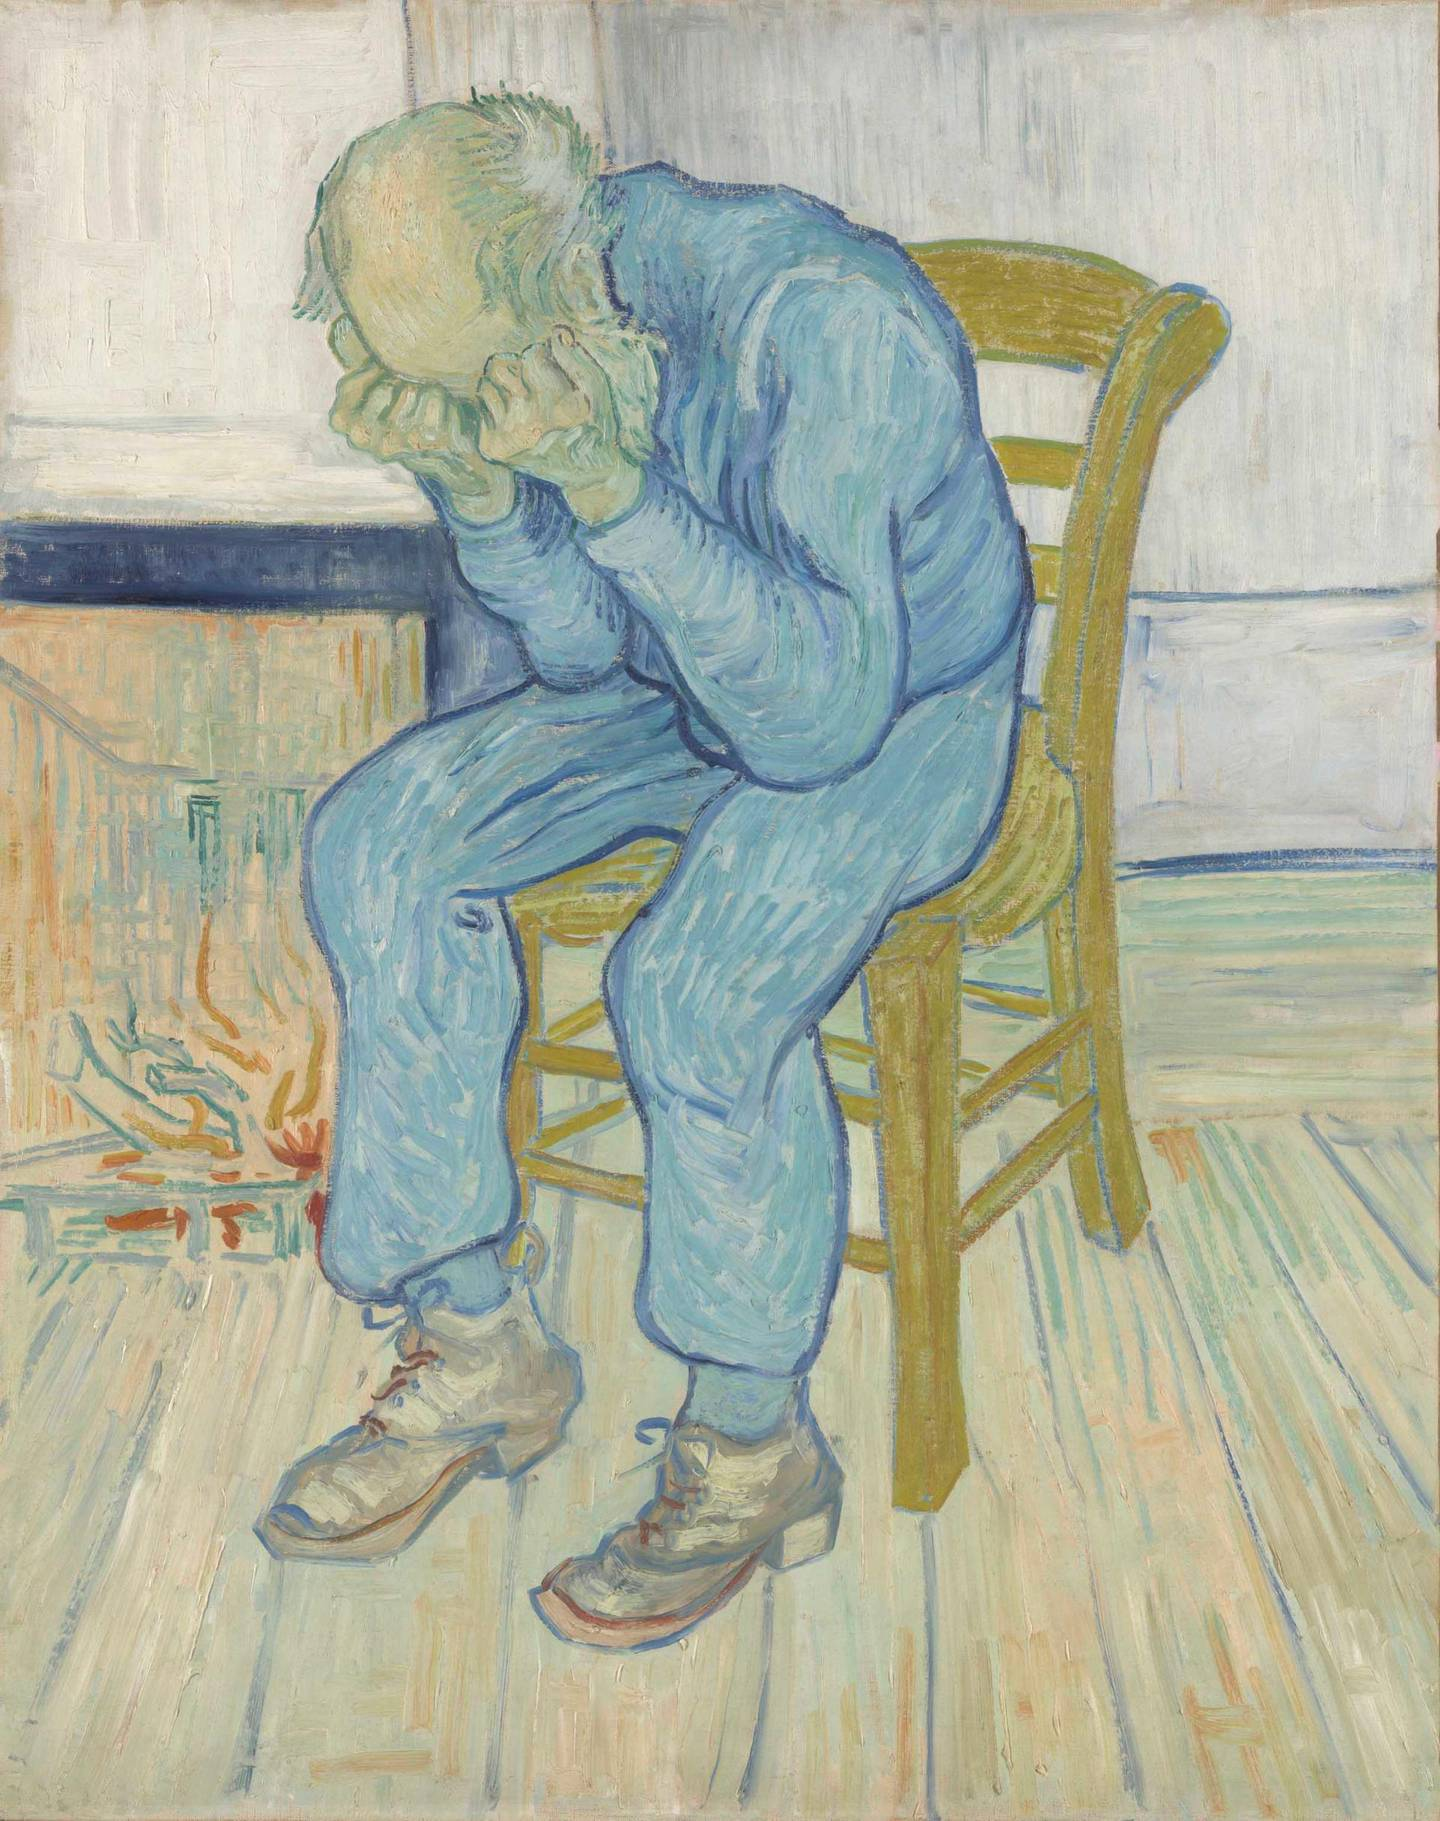 Vincent van Gogh (1853 – 1890) Sorrowing old man ('At Eternity's Gate')  1890 Oil paint on canvas 810 x 650 mm Collection Kröller-Müller Museum, Otterlo